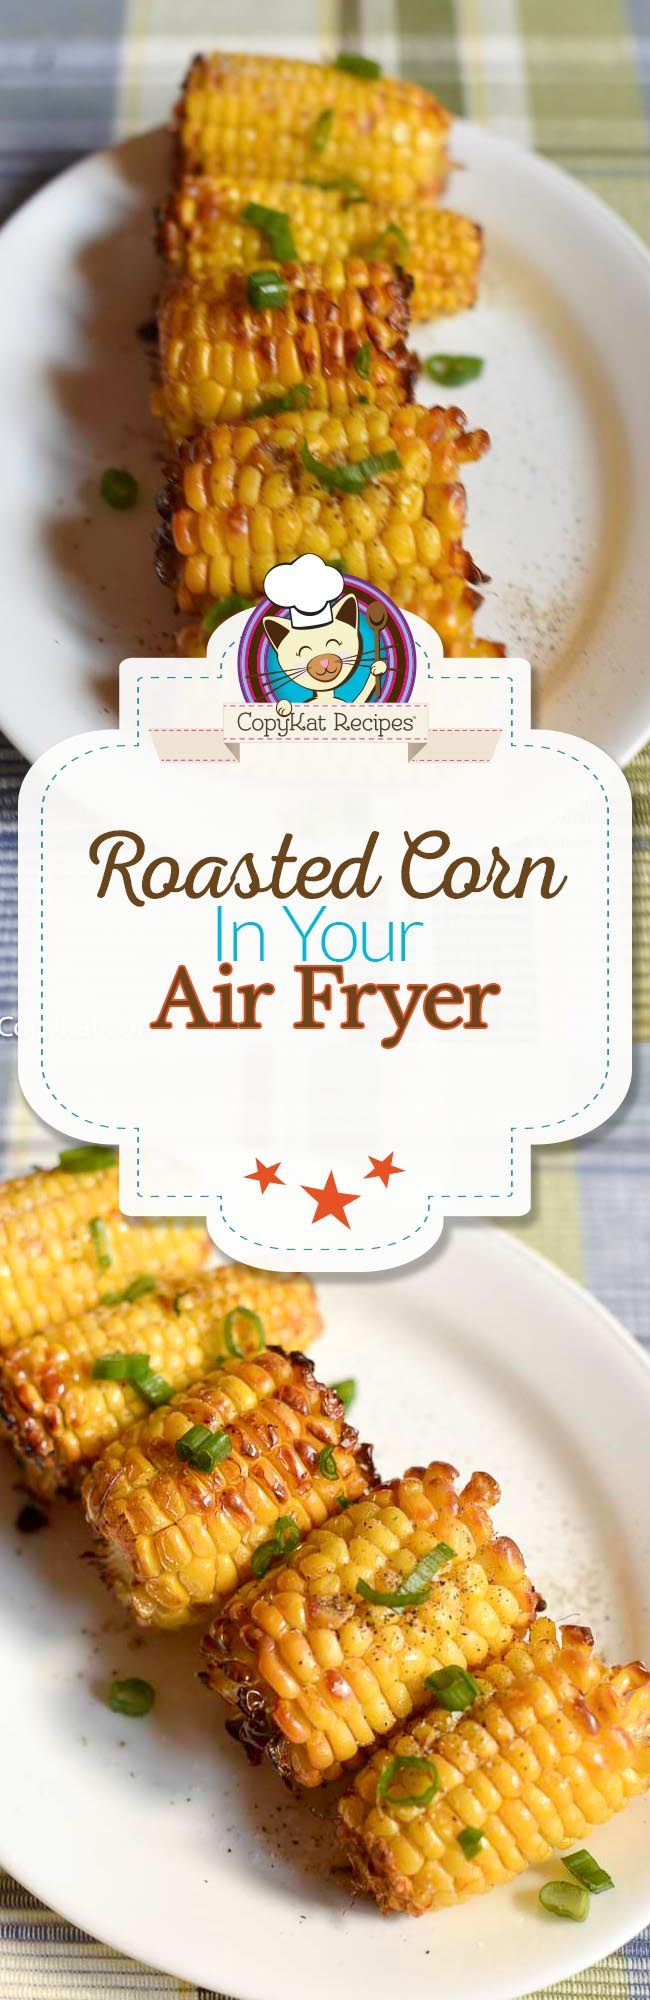 Use your air fryer in a new way!  Make roasted corn in your air fryer today.